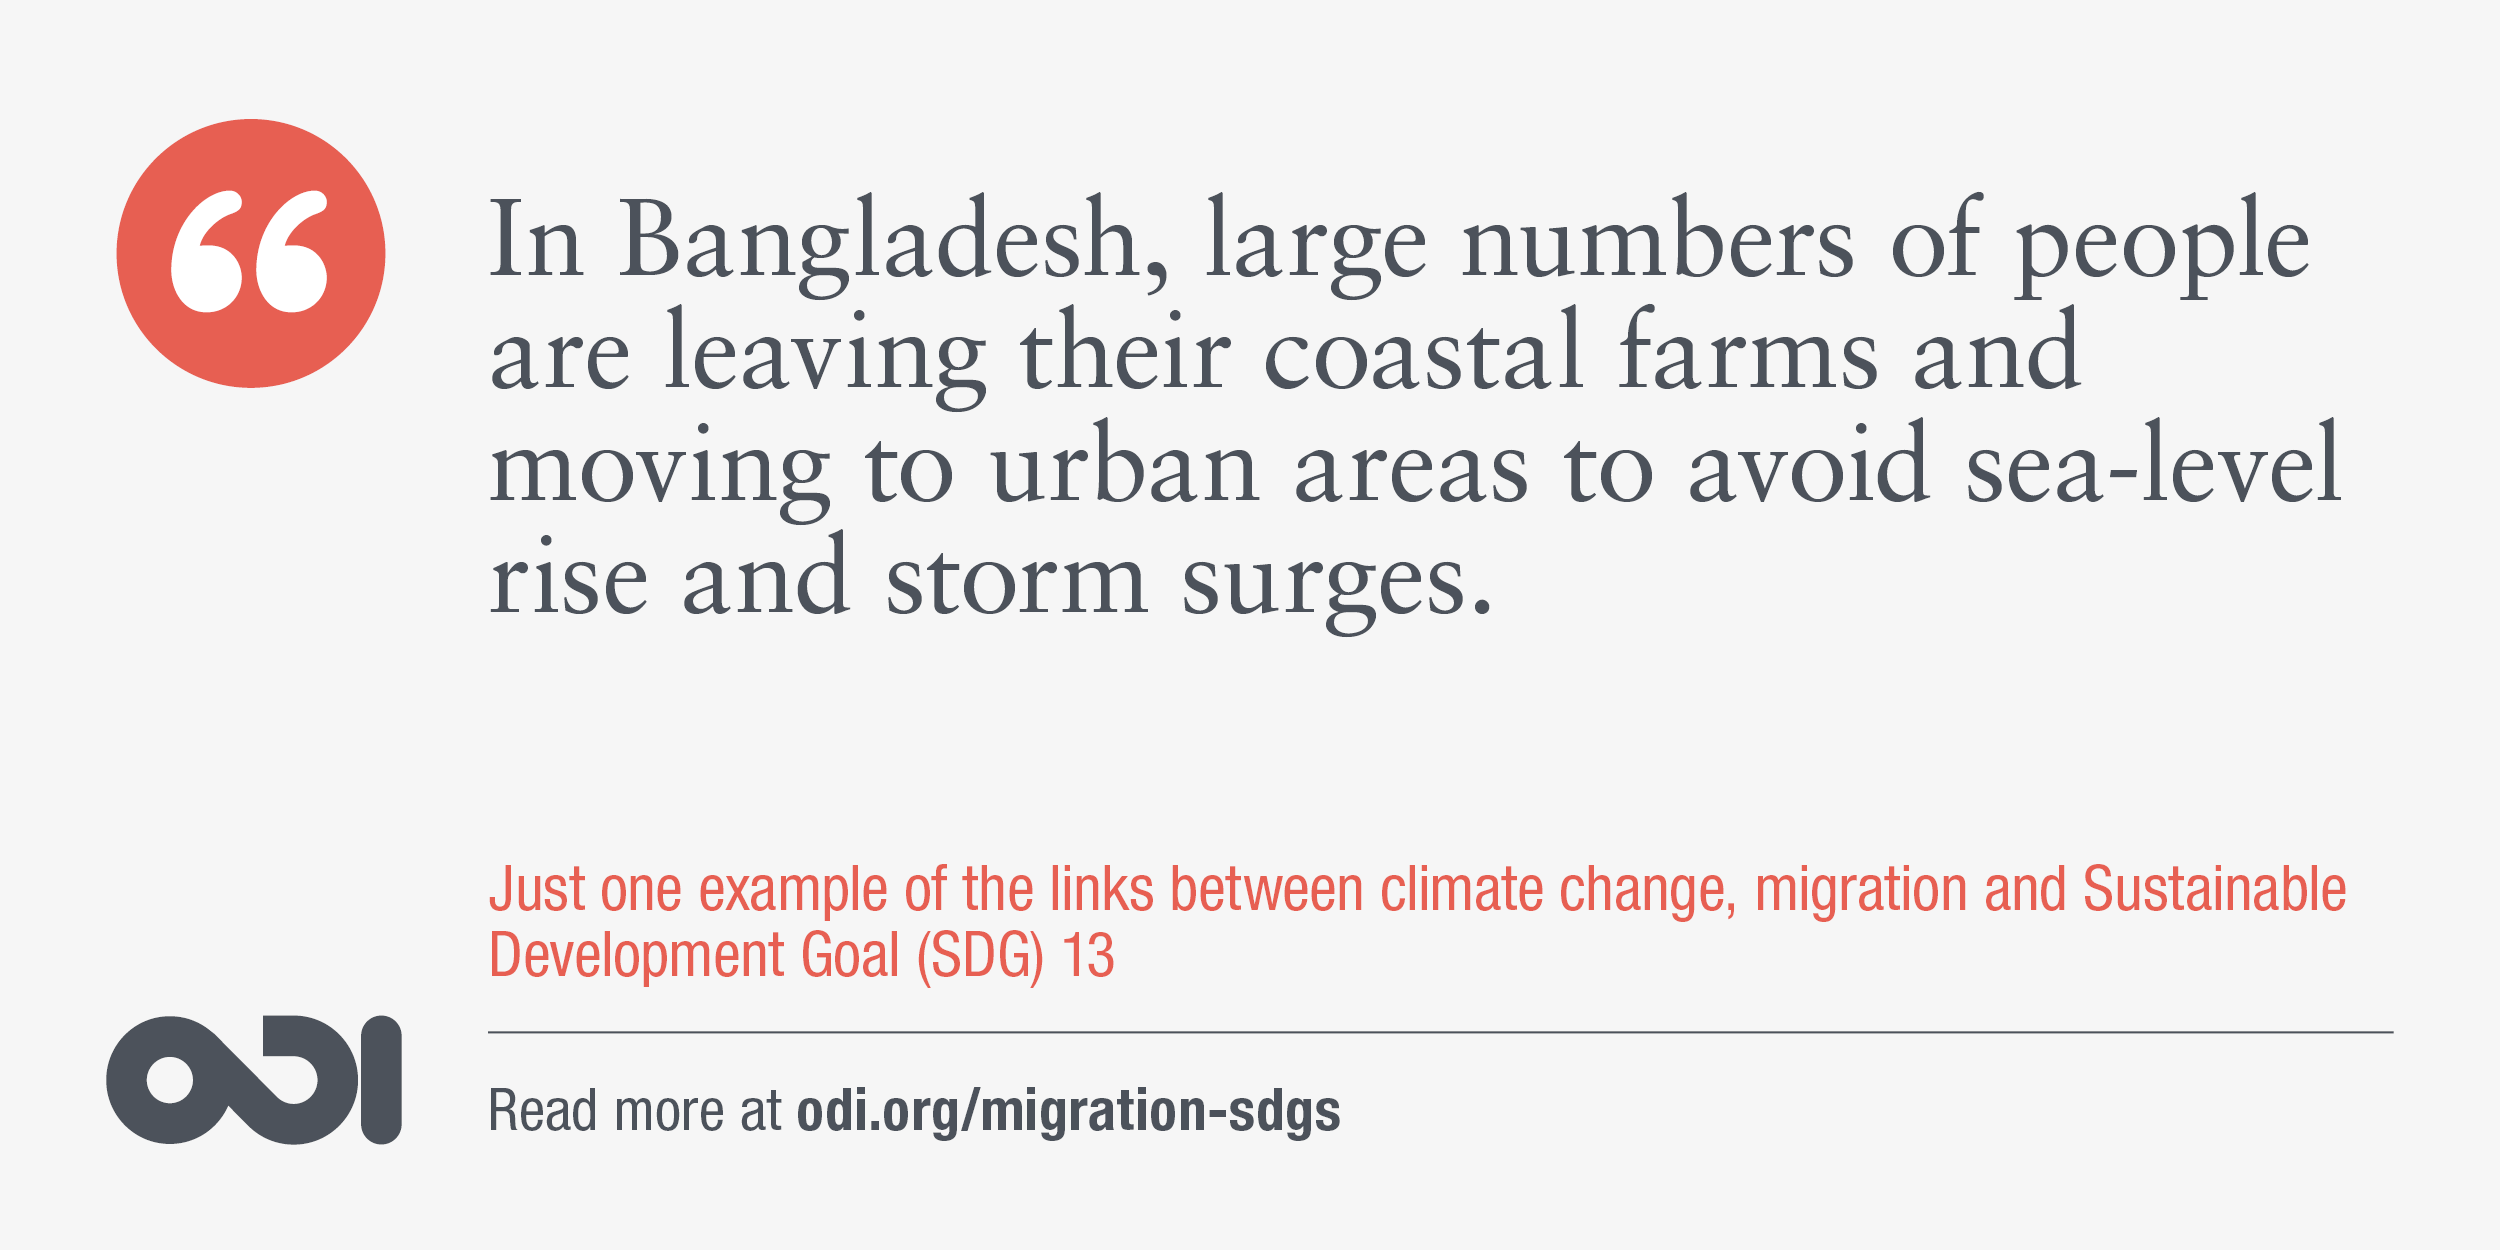 The links between climate change, migration and SDG 13.